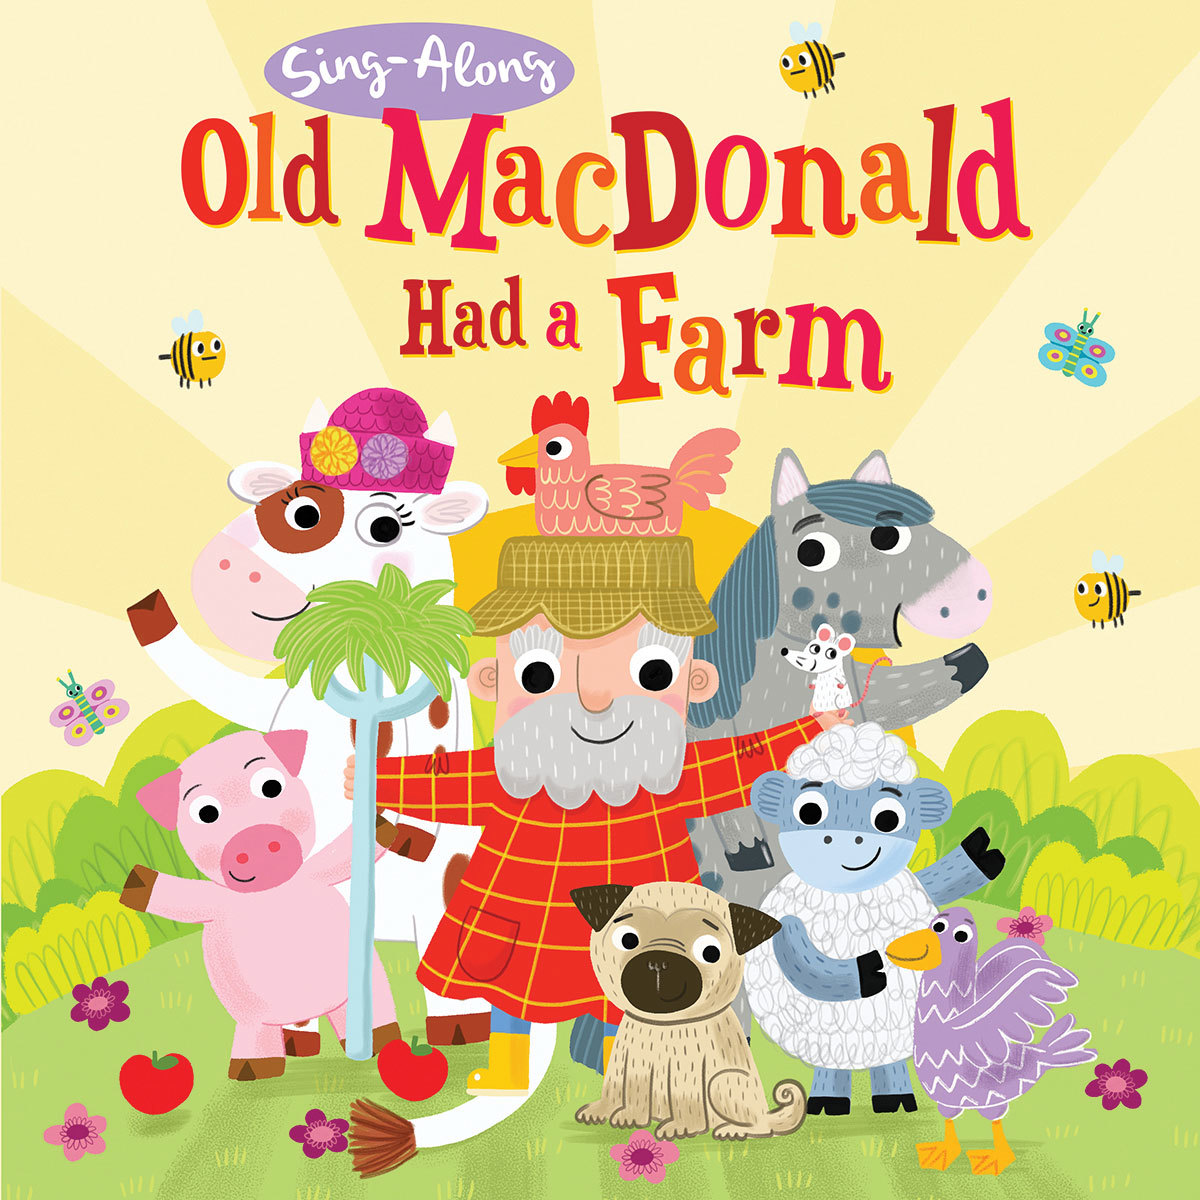 SING-ALONG OLD MACDONALD HAD A FARM